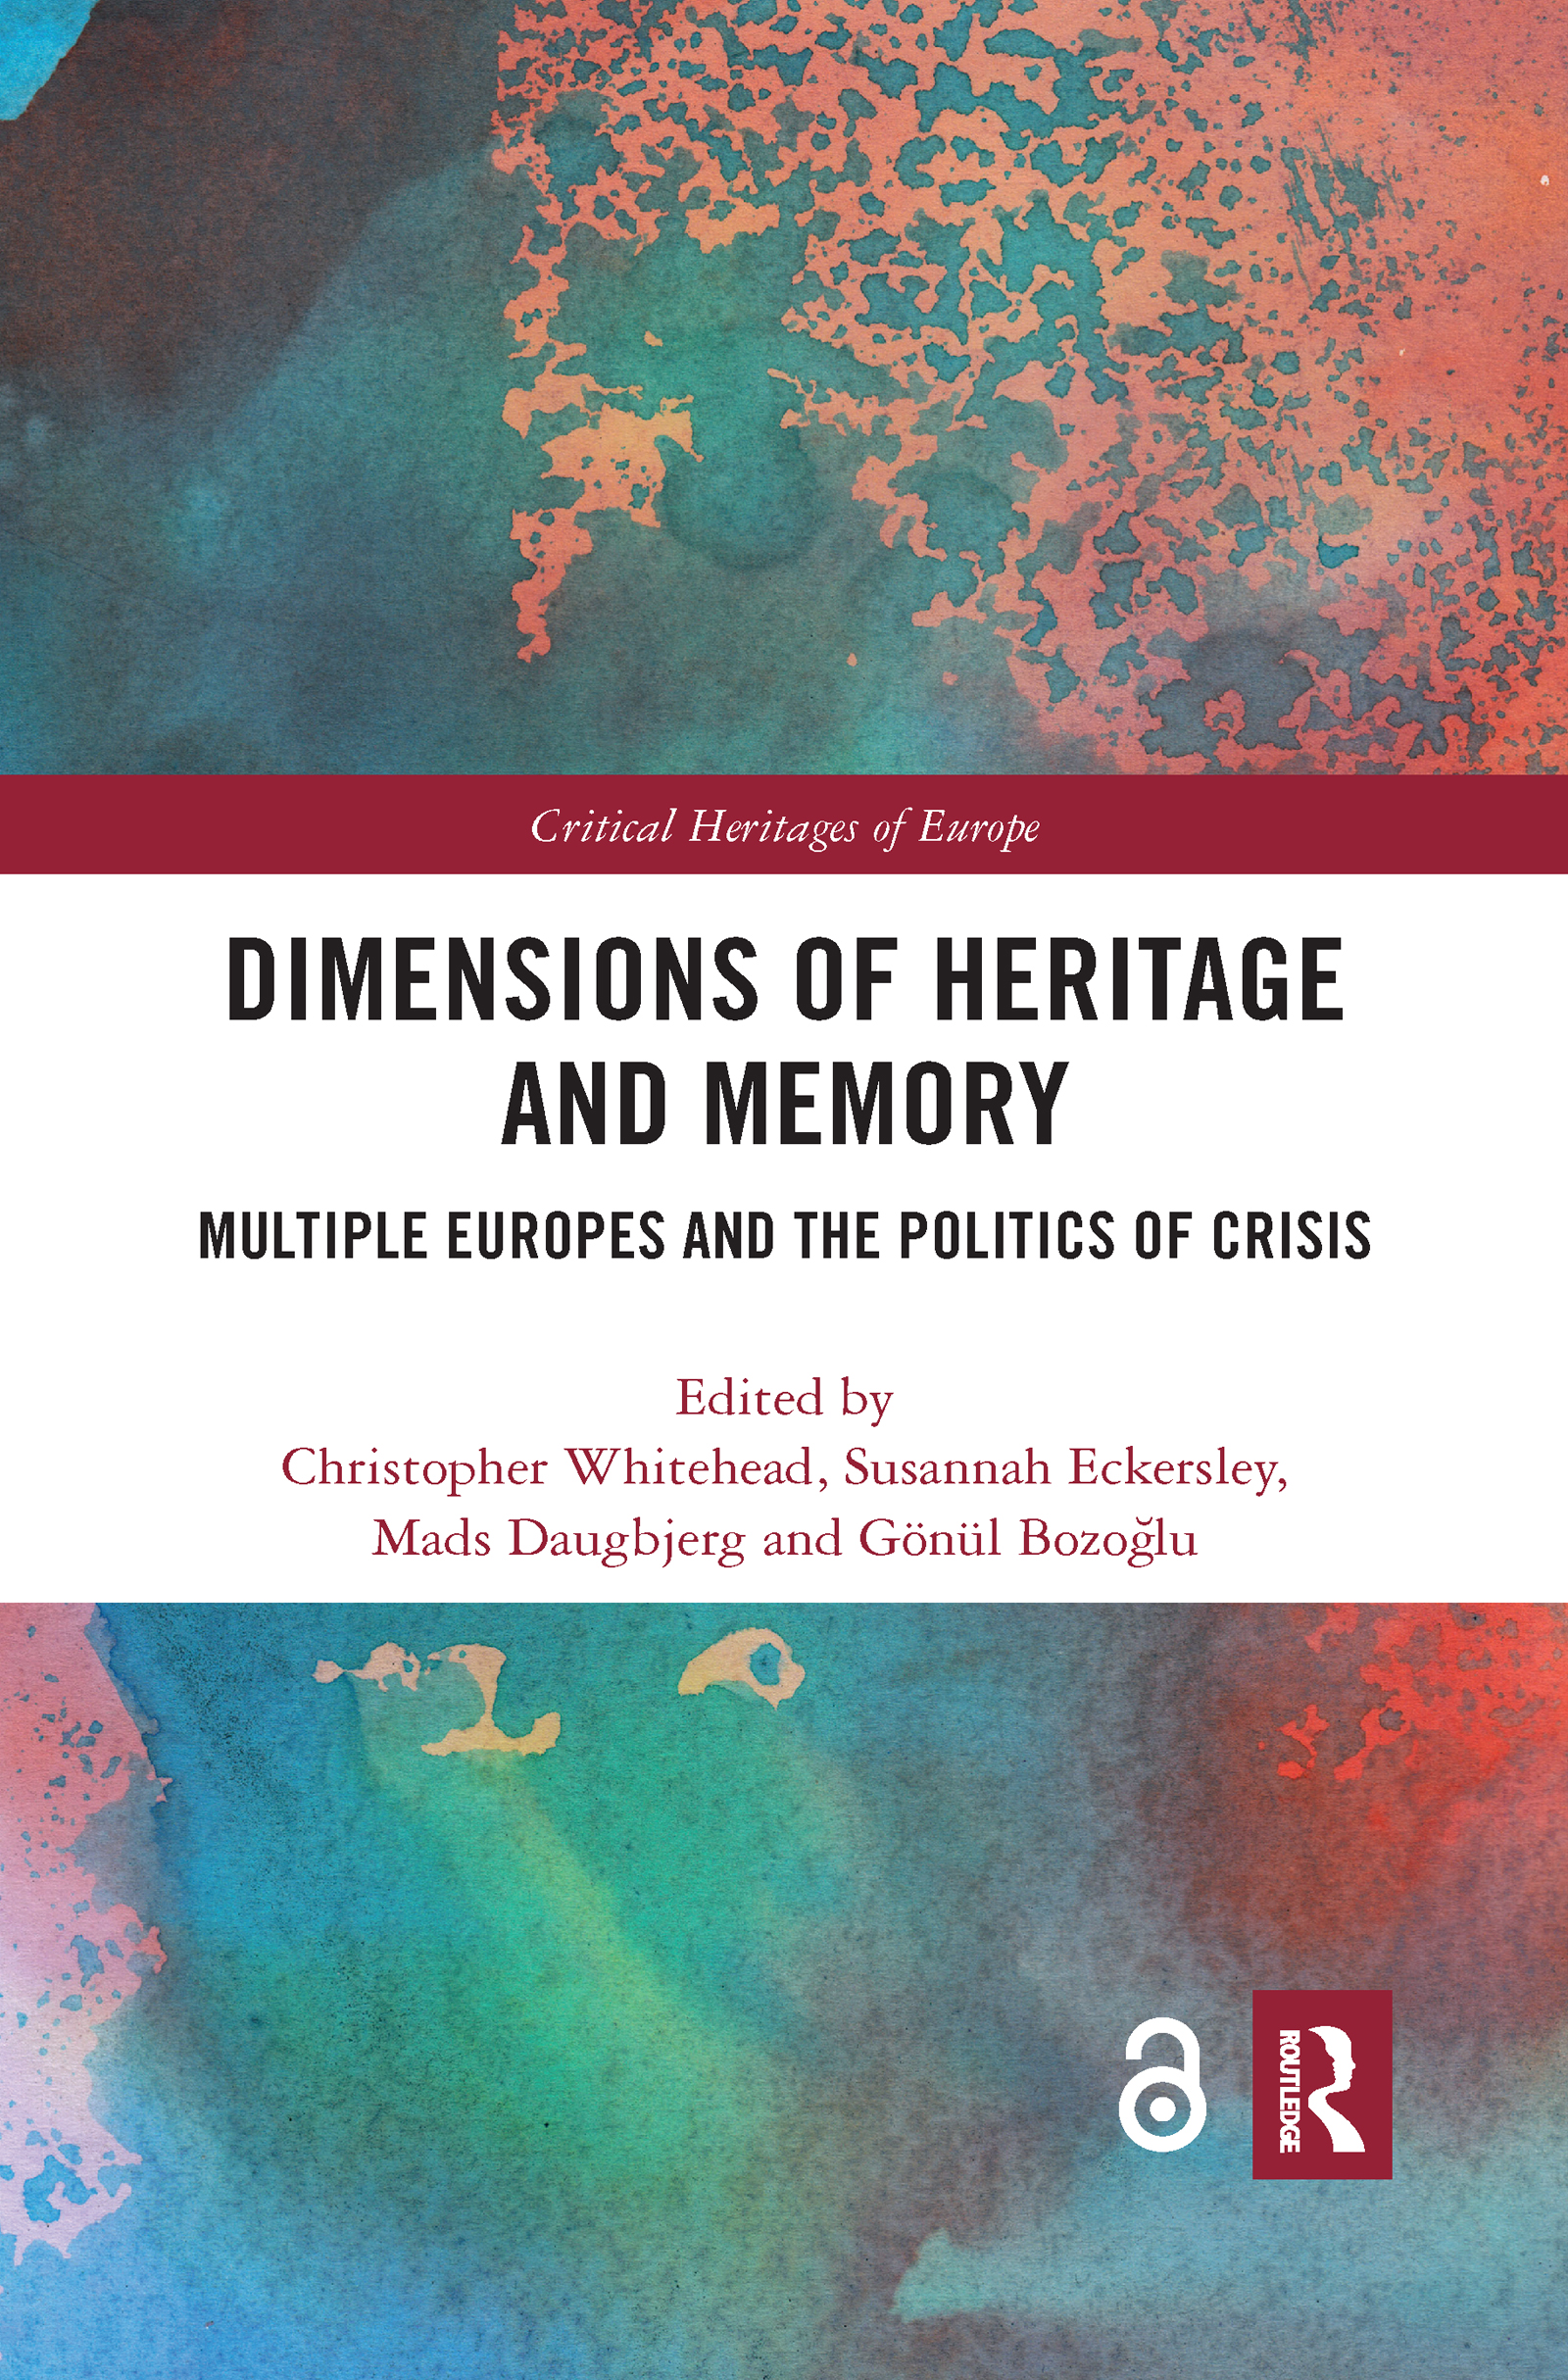 Dimensions of Heritage and Memory